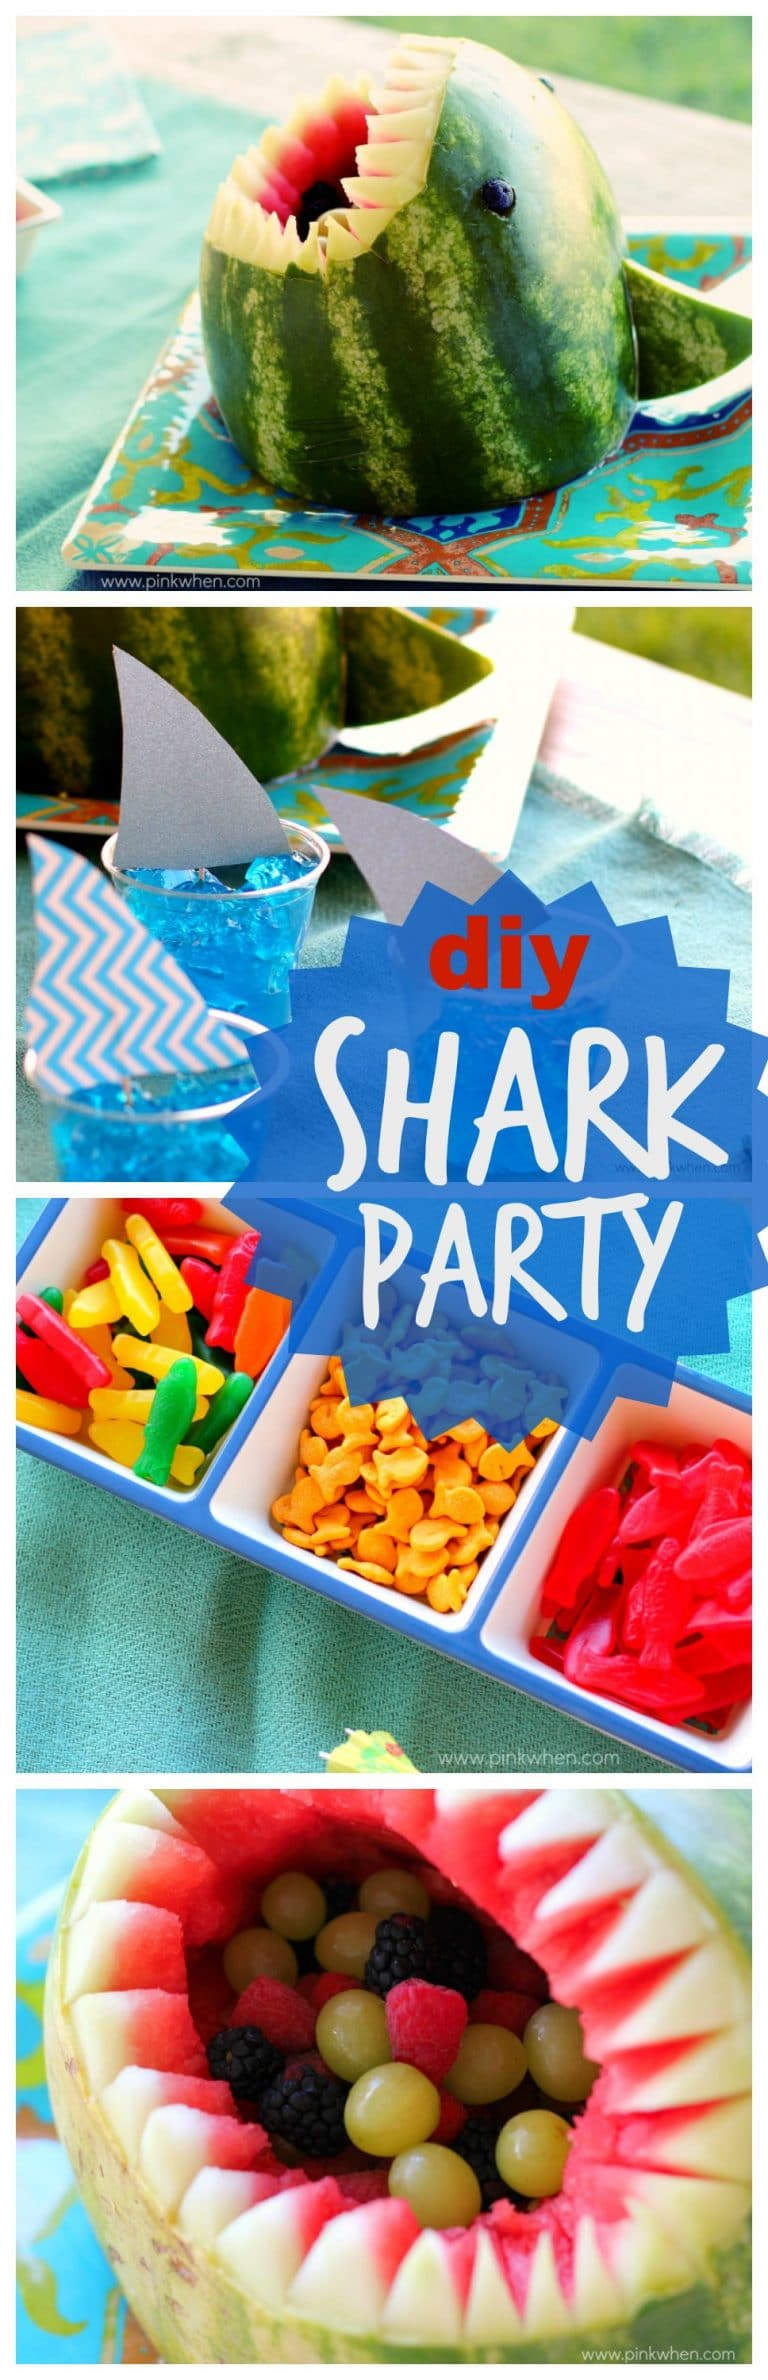 Summertime Shark Party